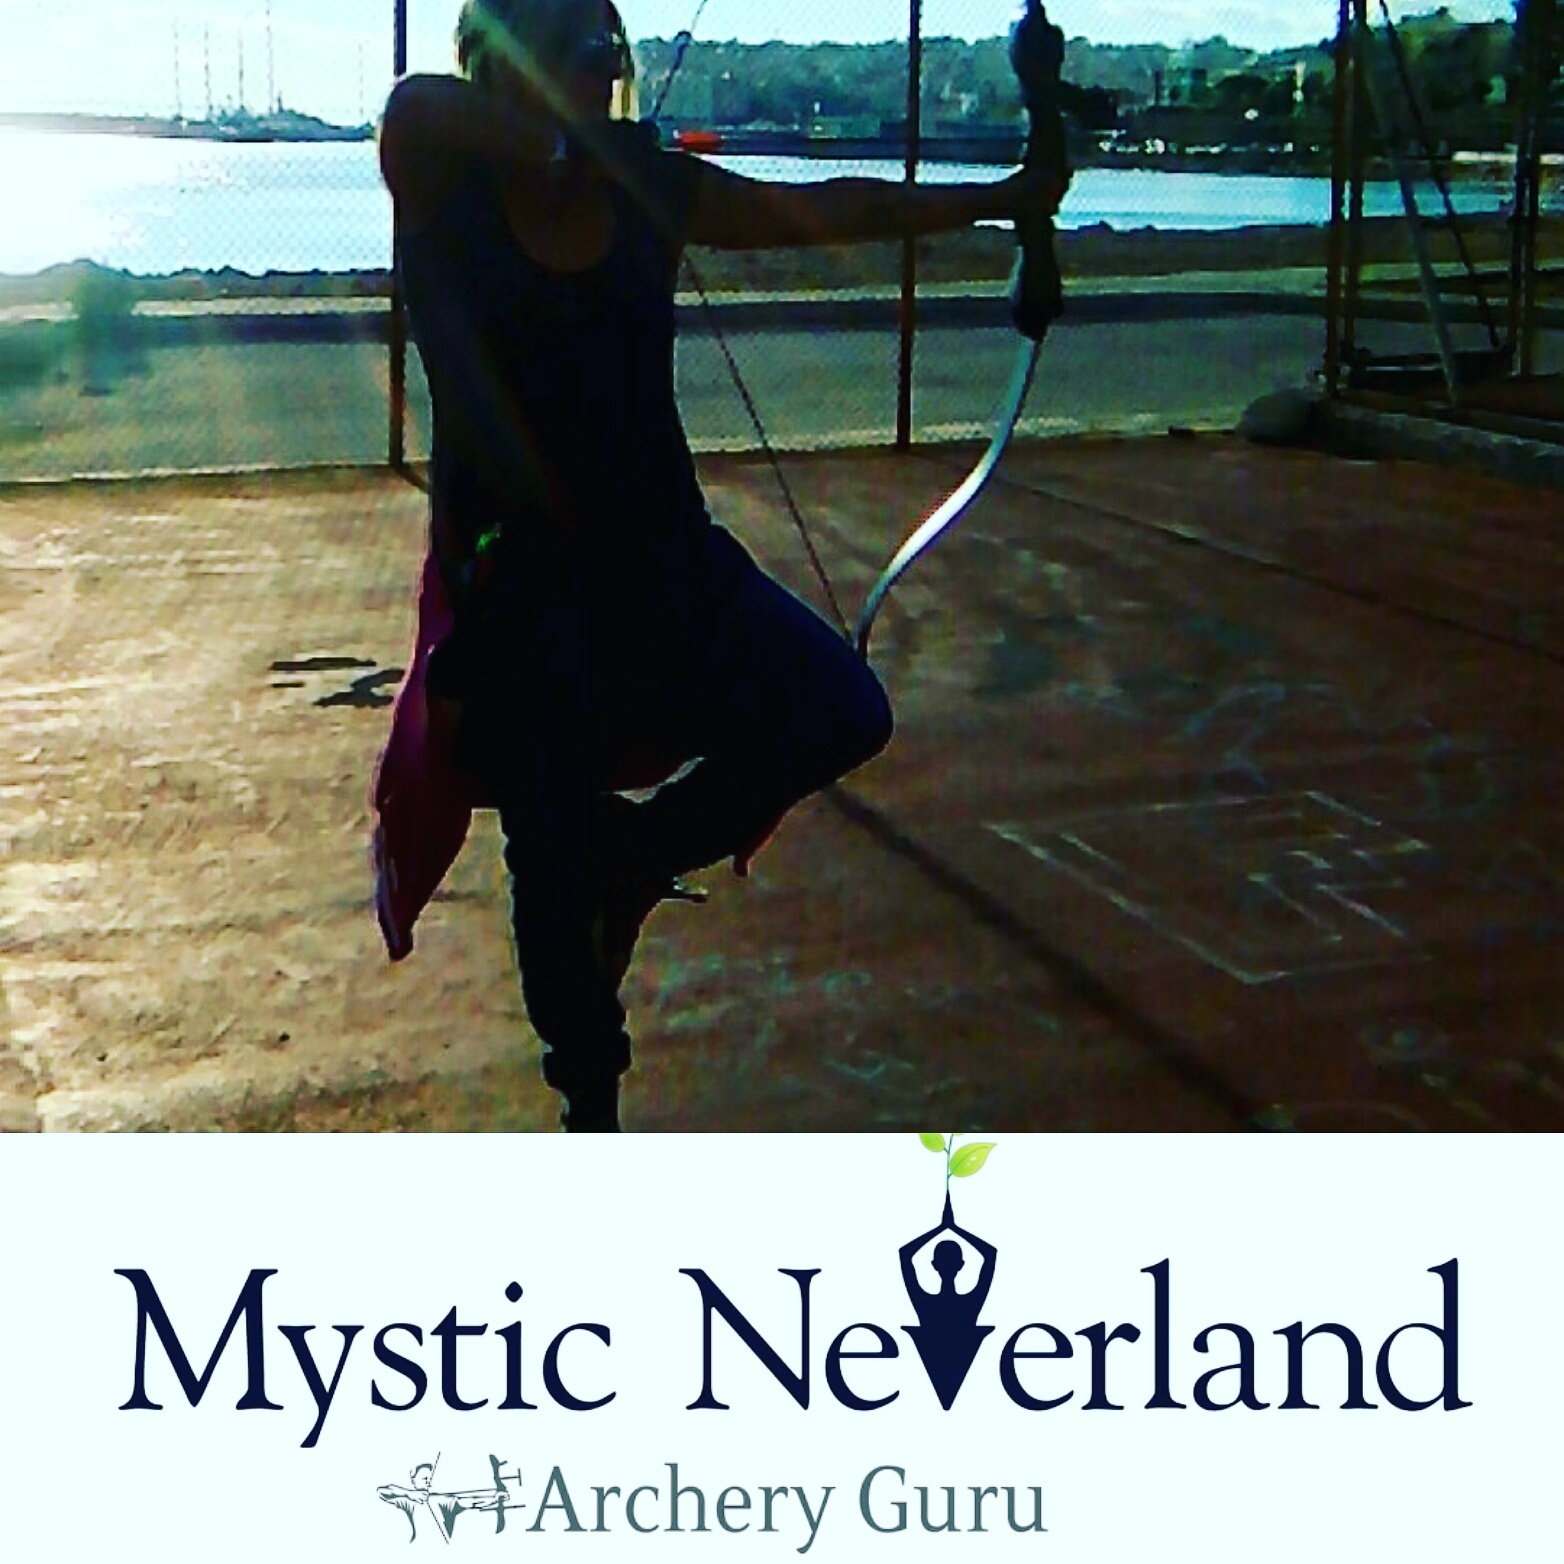 Mystic Neverland Archery Yoga